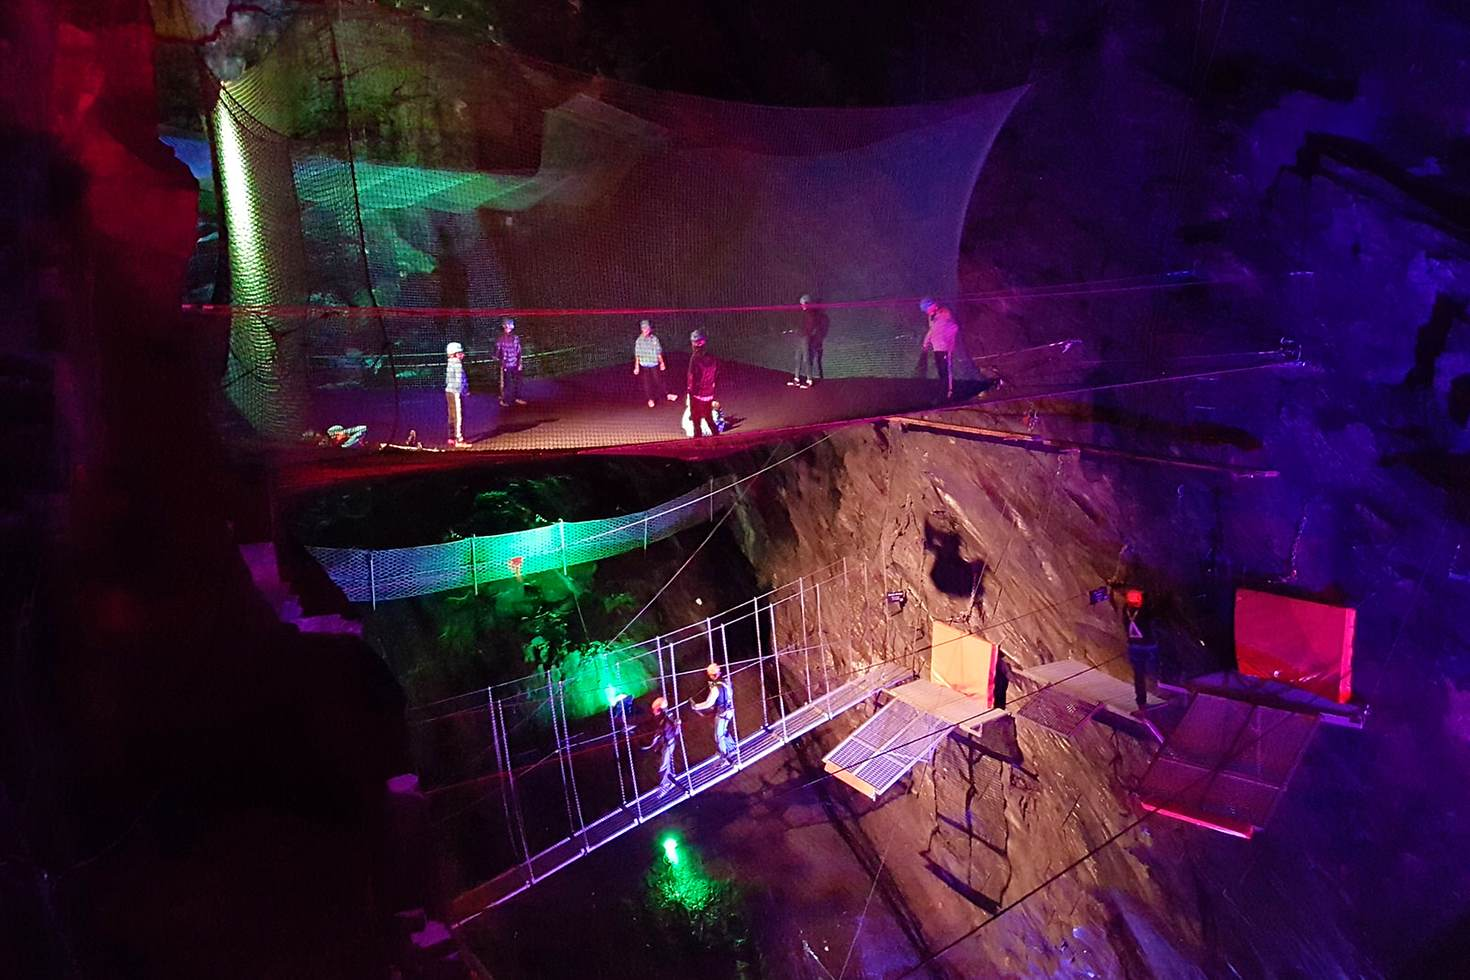 Trampolines and zip lines hang in cathedral-sized caves at Blaenau Ffestiniog © James Smart / Lonely Planet